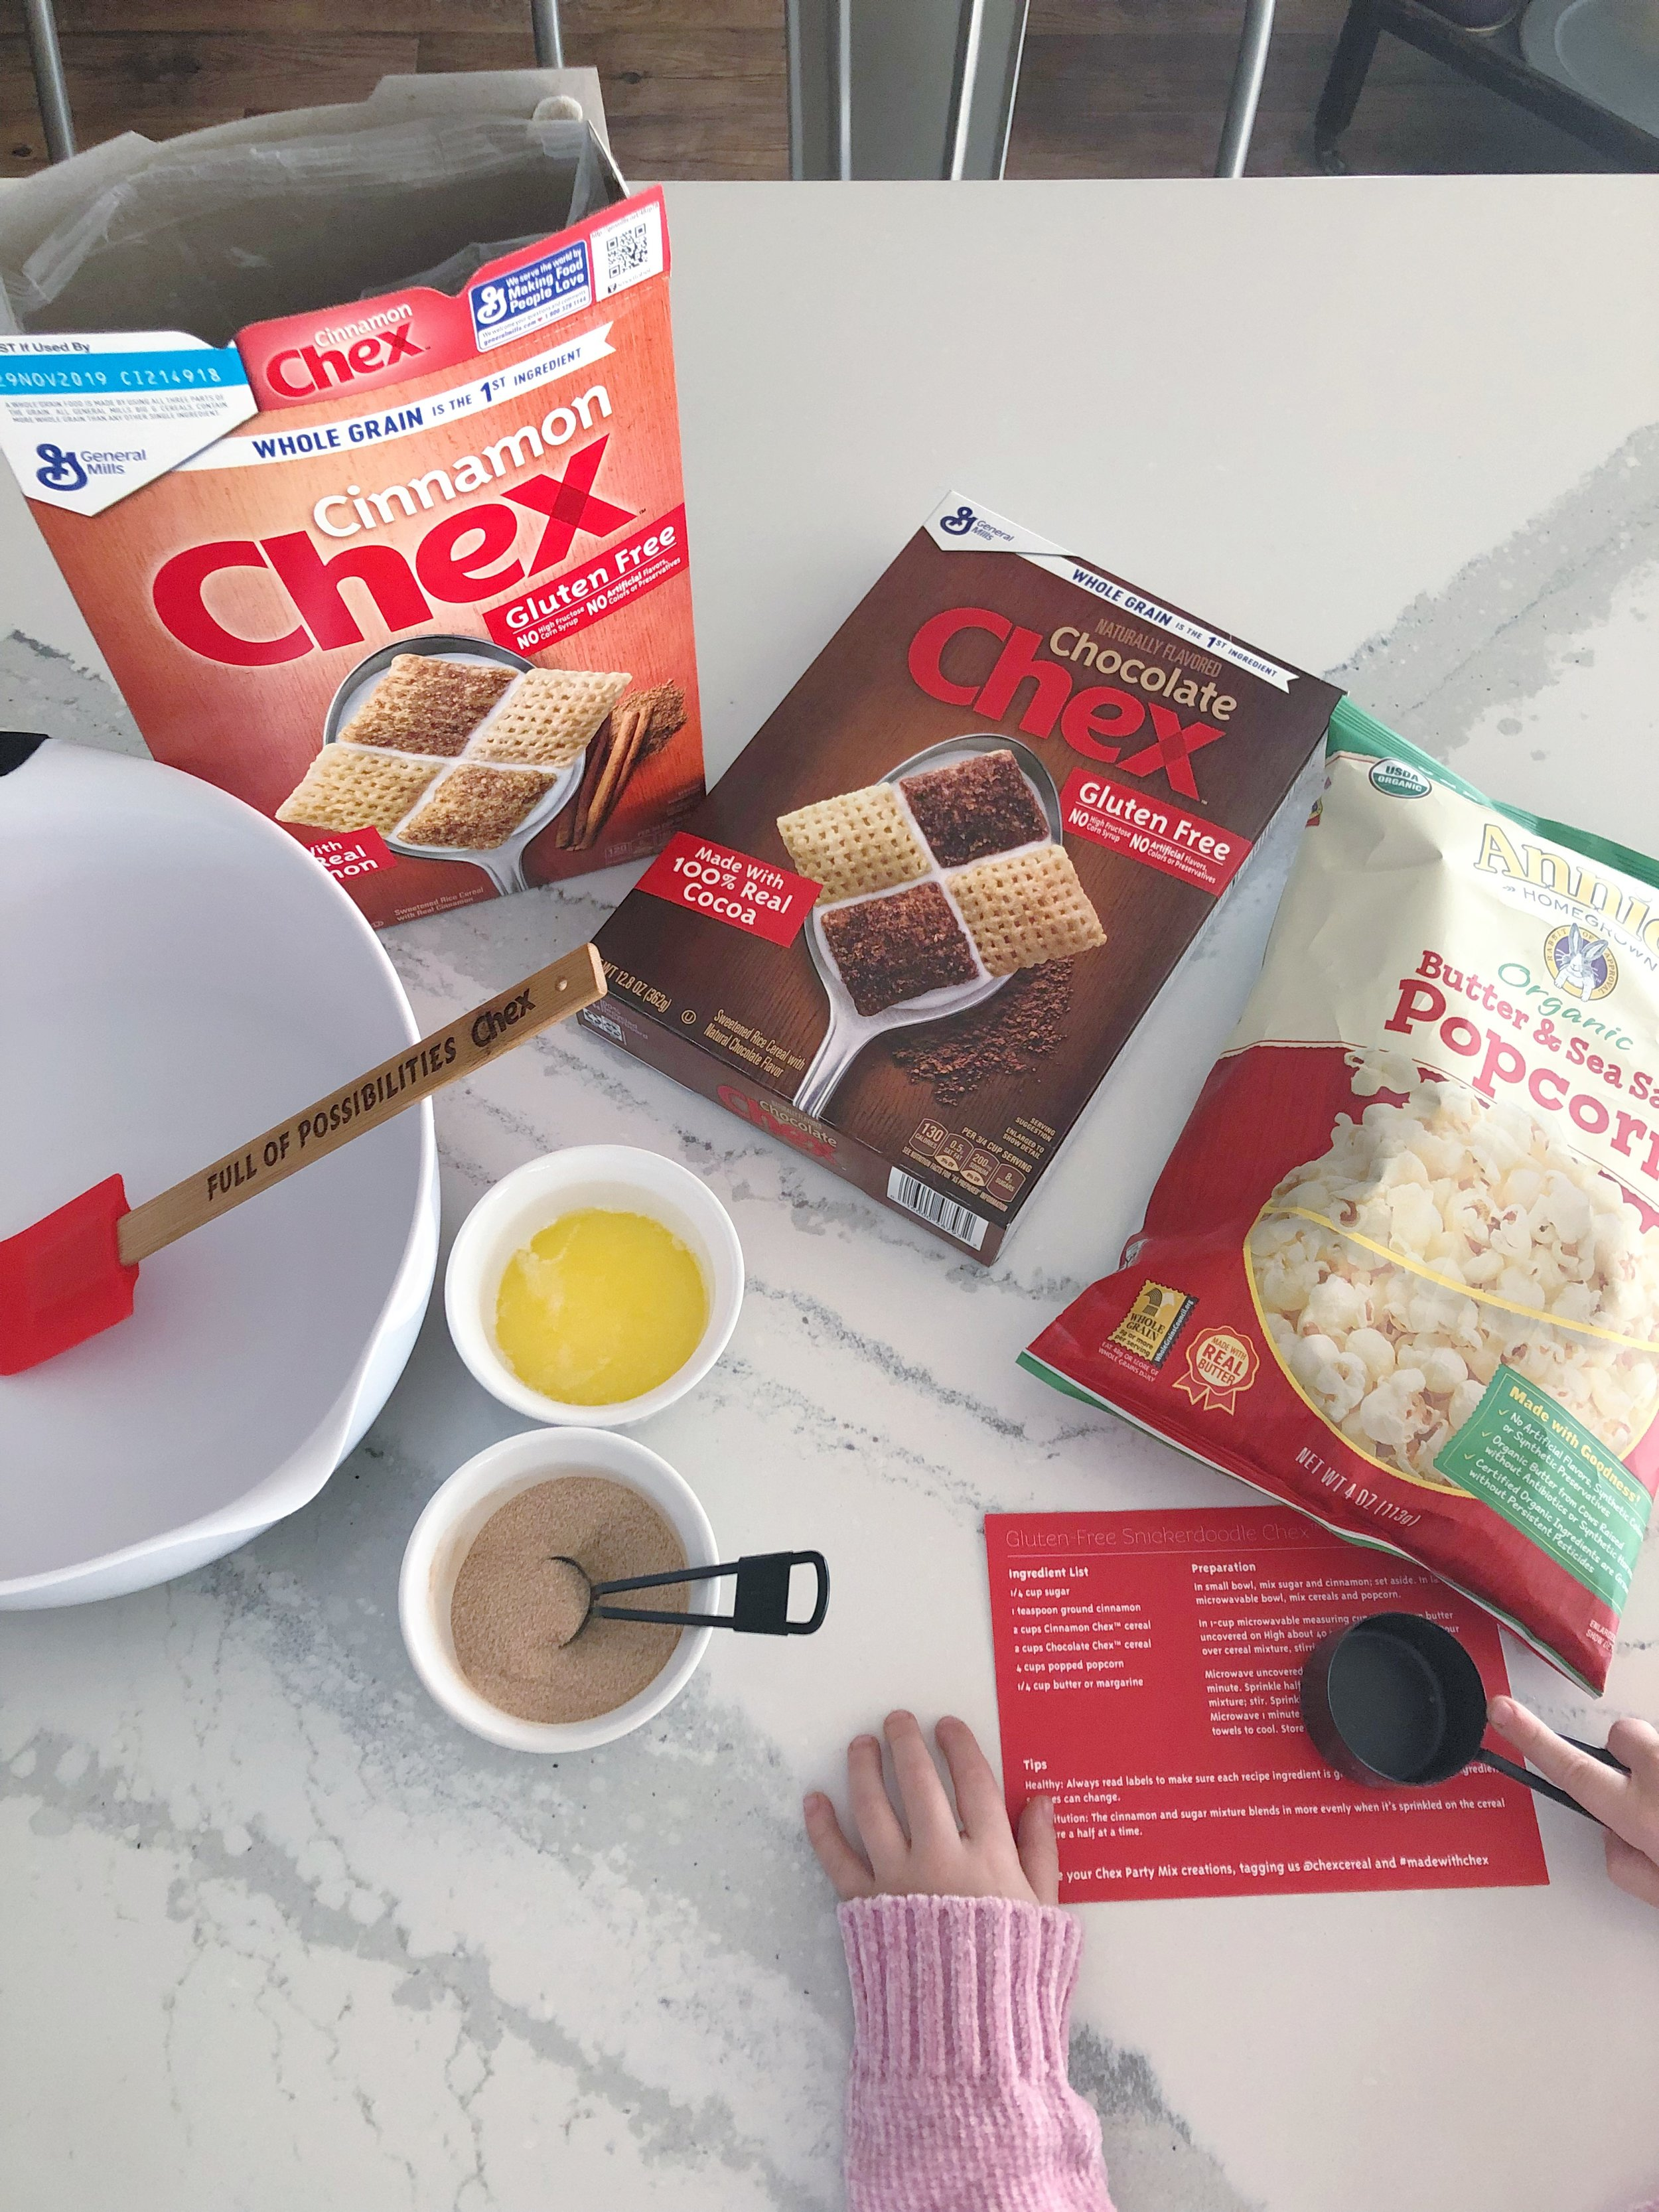 chex-recipe-card-ingredients.JPG